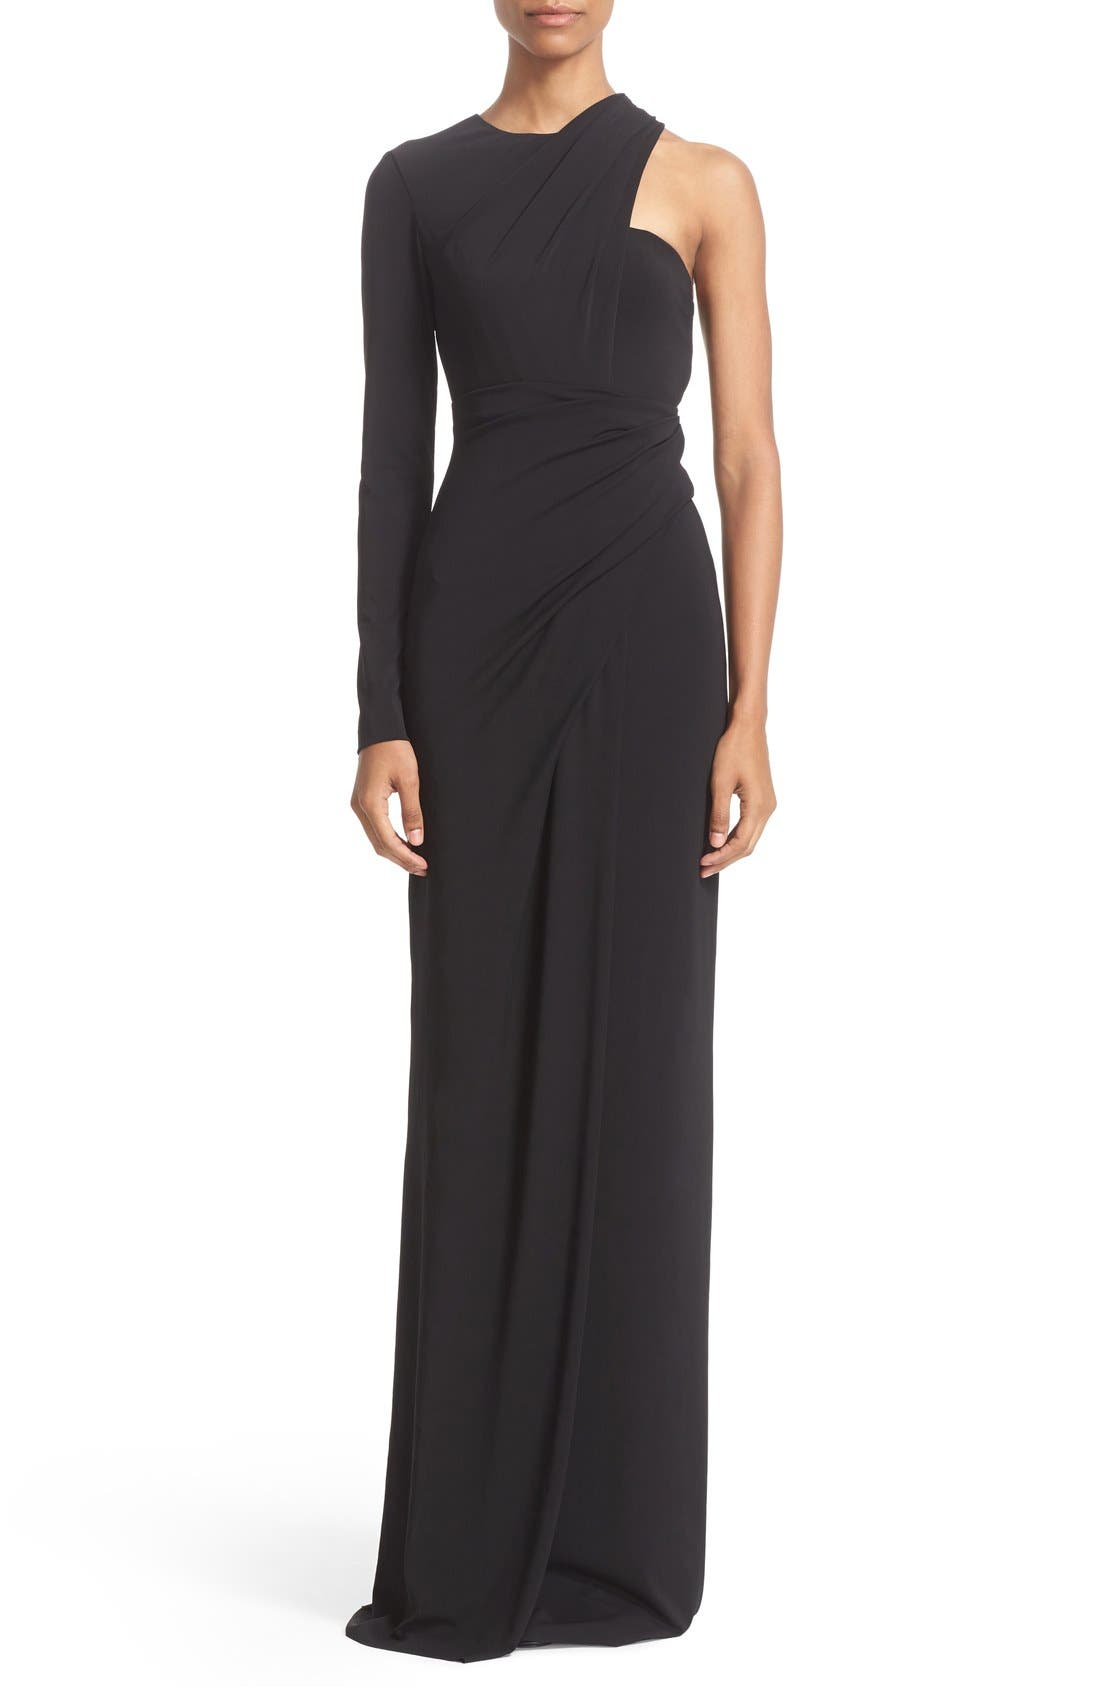 Alternate Image 1 Selected - Alexander Wang Draped Asymmetrical One-Sleeve Gown